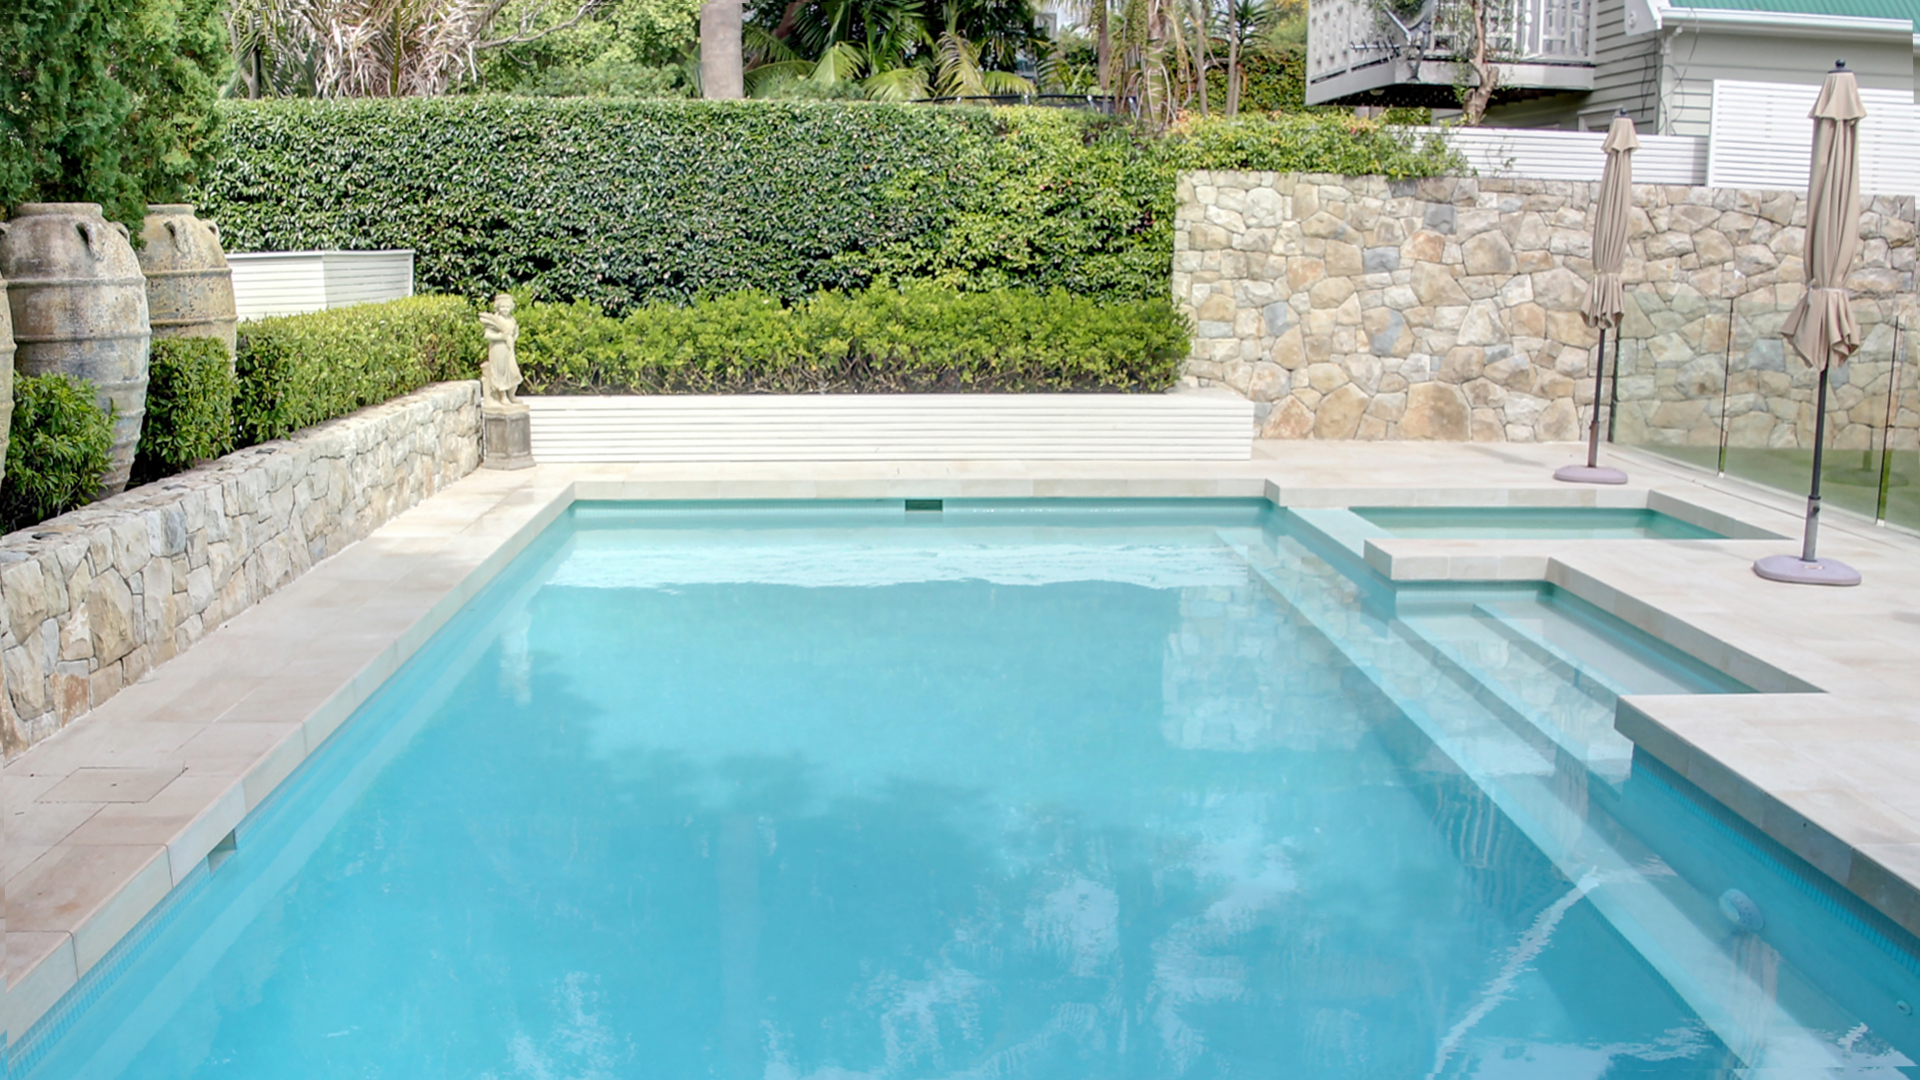 Pool Images & Designs